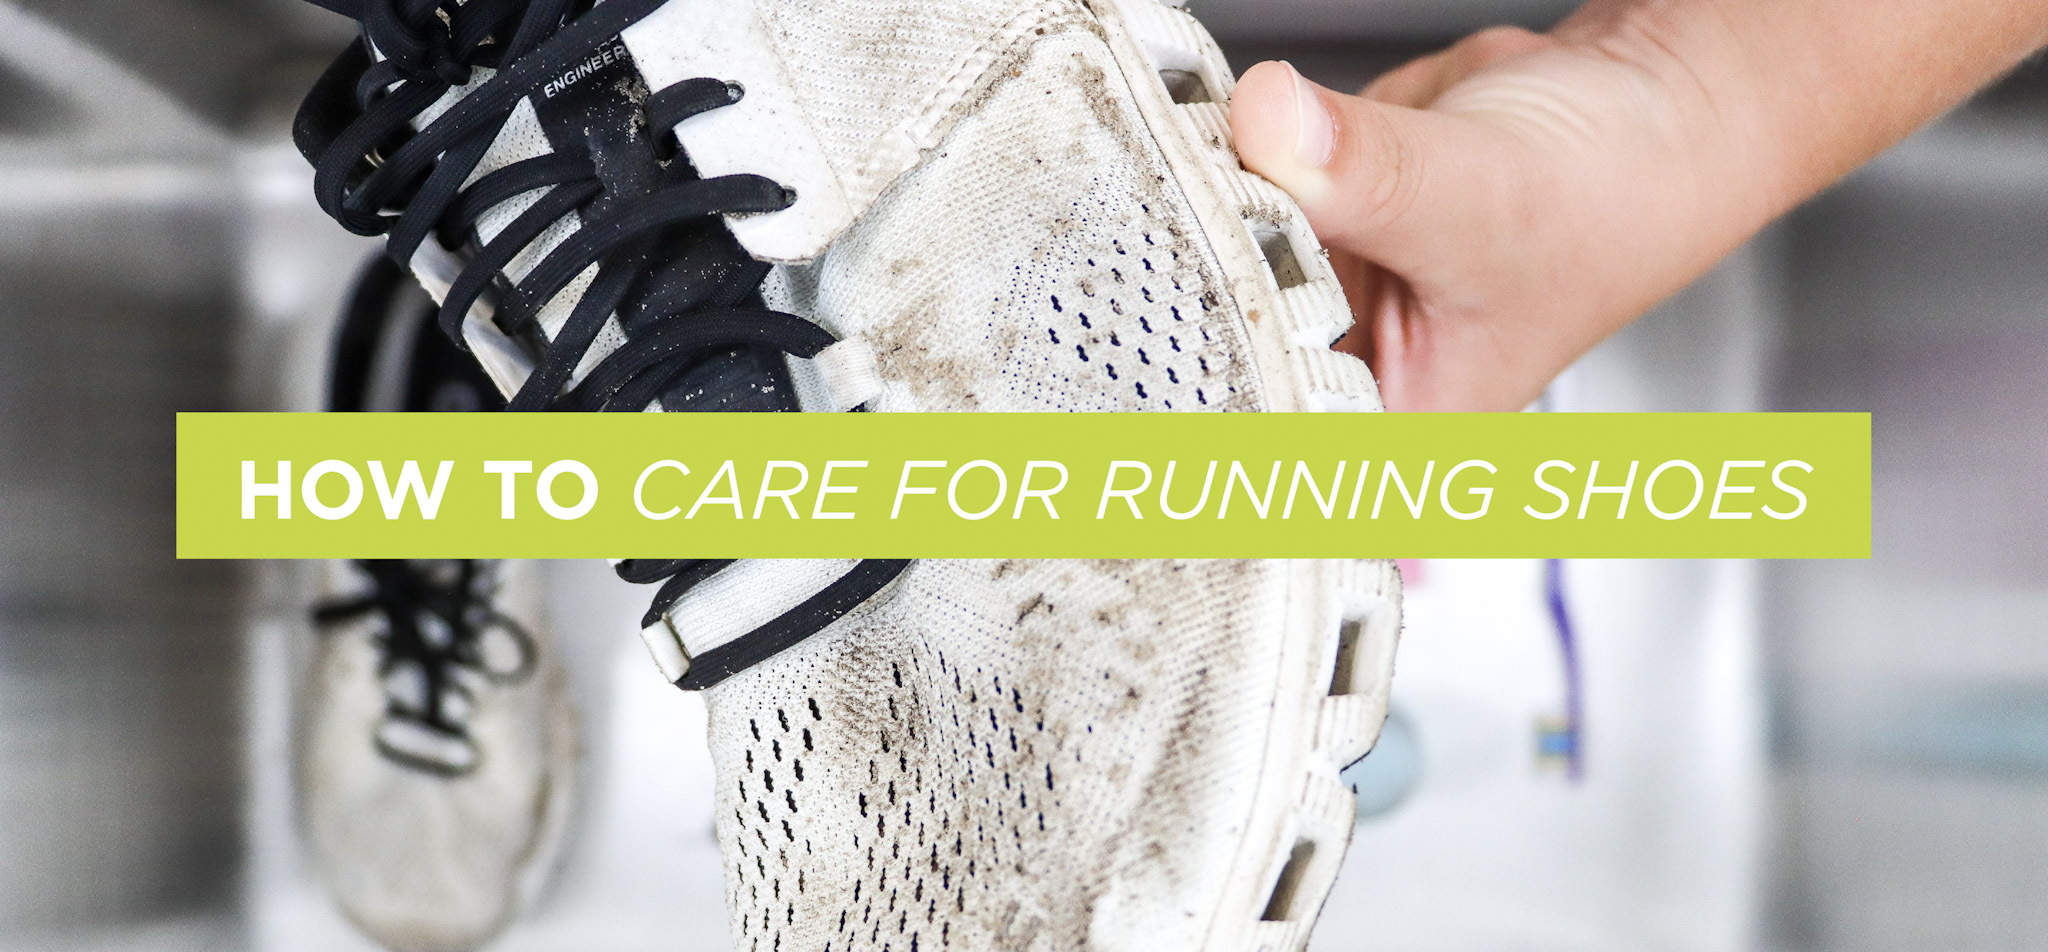 How to Care for Running Shoes